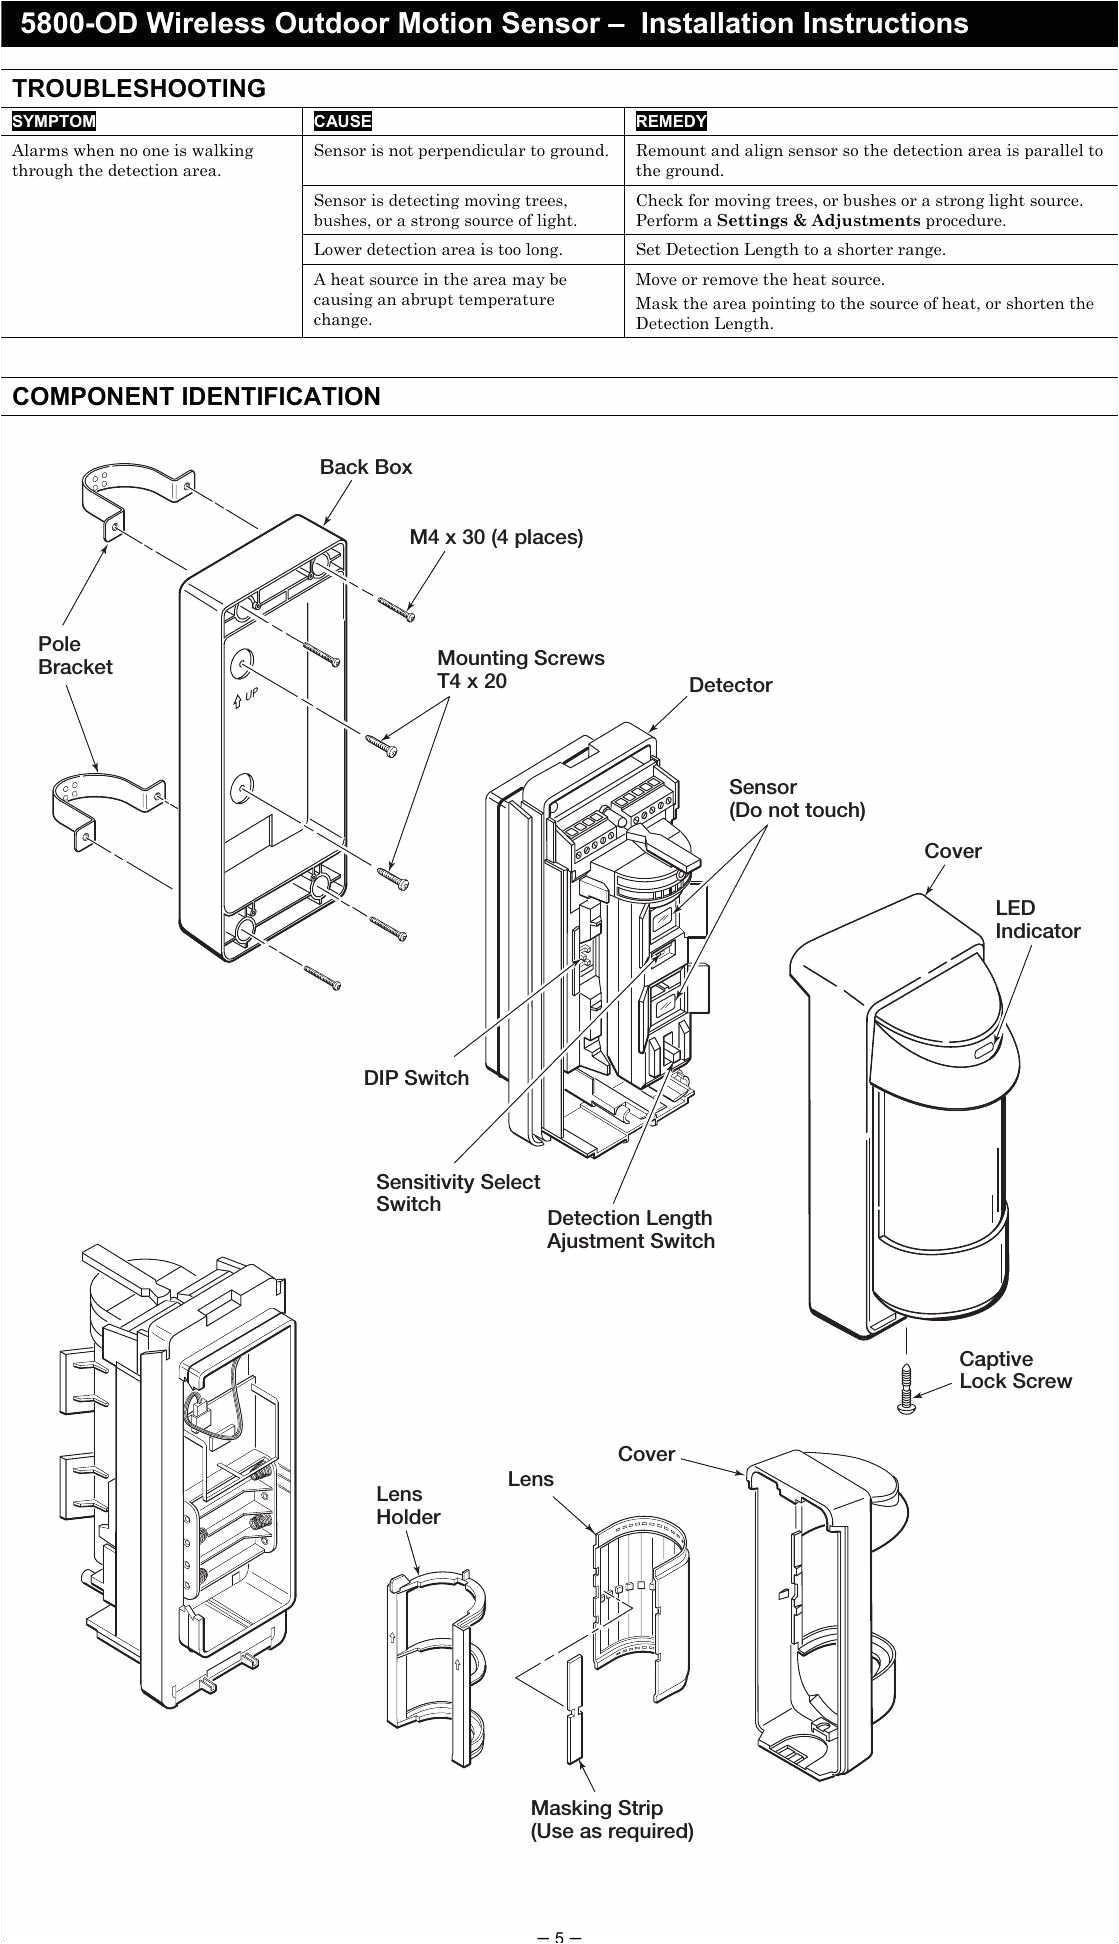 wiring diagram for emergency lighting awesome to led light wiring diagram sensors of wiring diagram for emergency lighting jpg